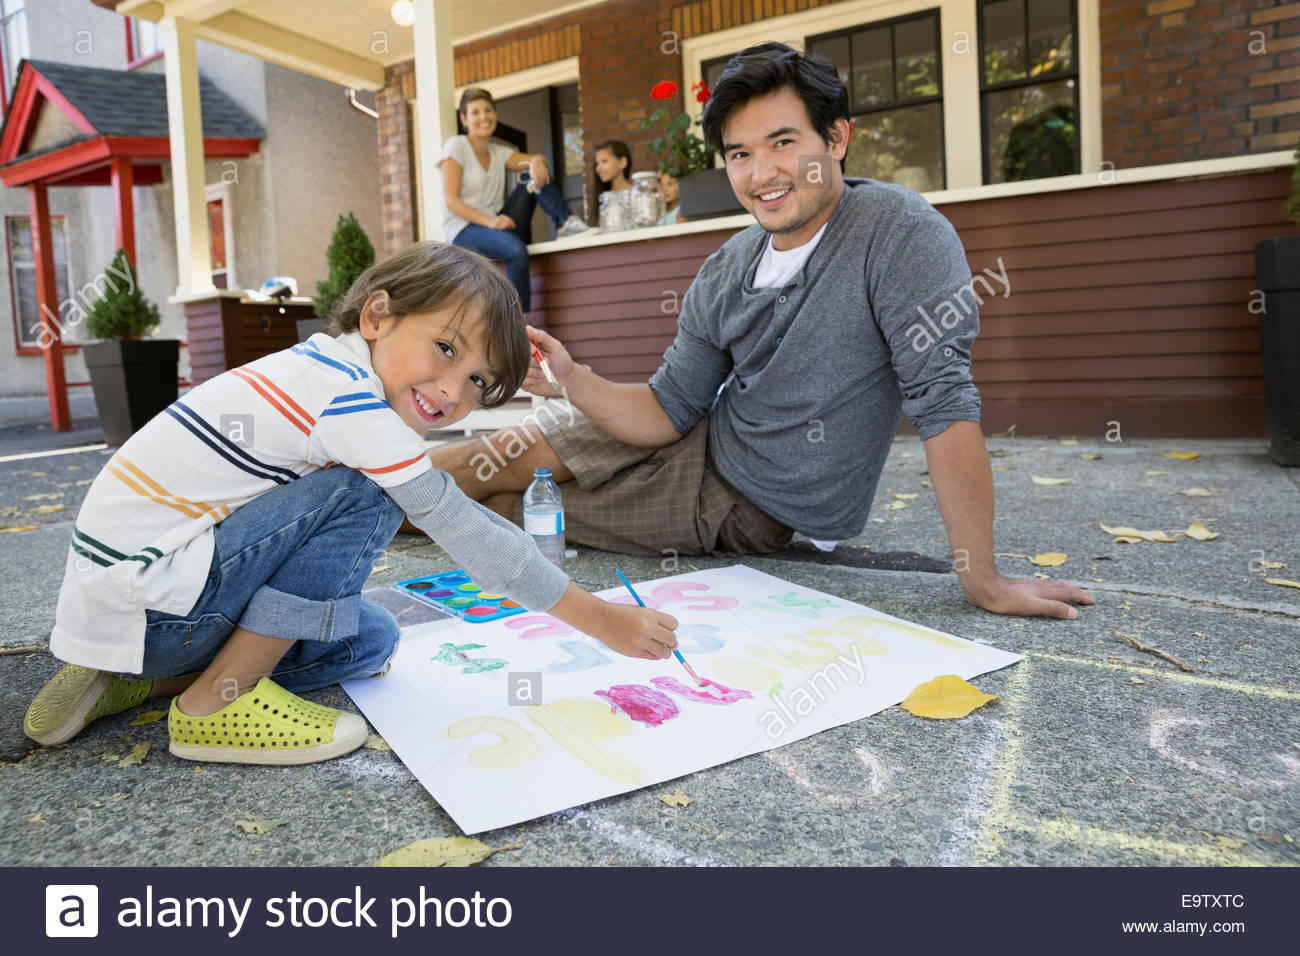 Father and son painting lemonade stand sign - Stock Image